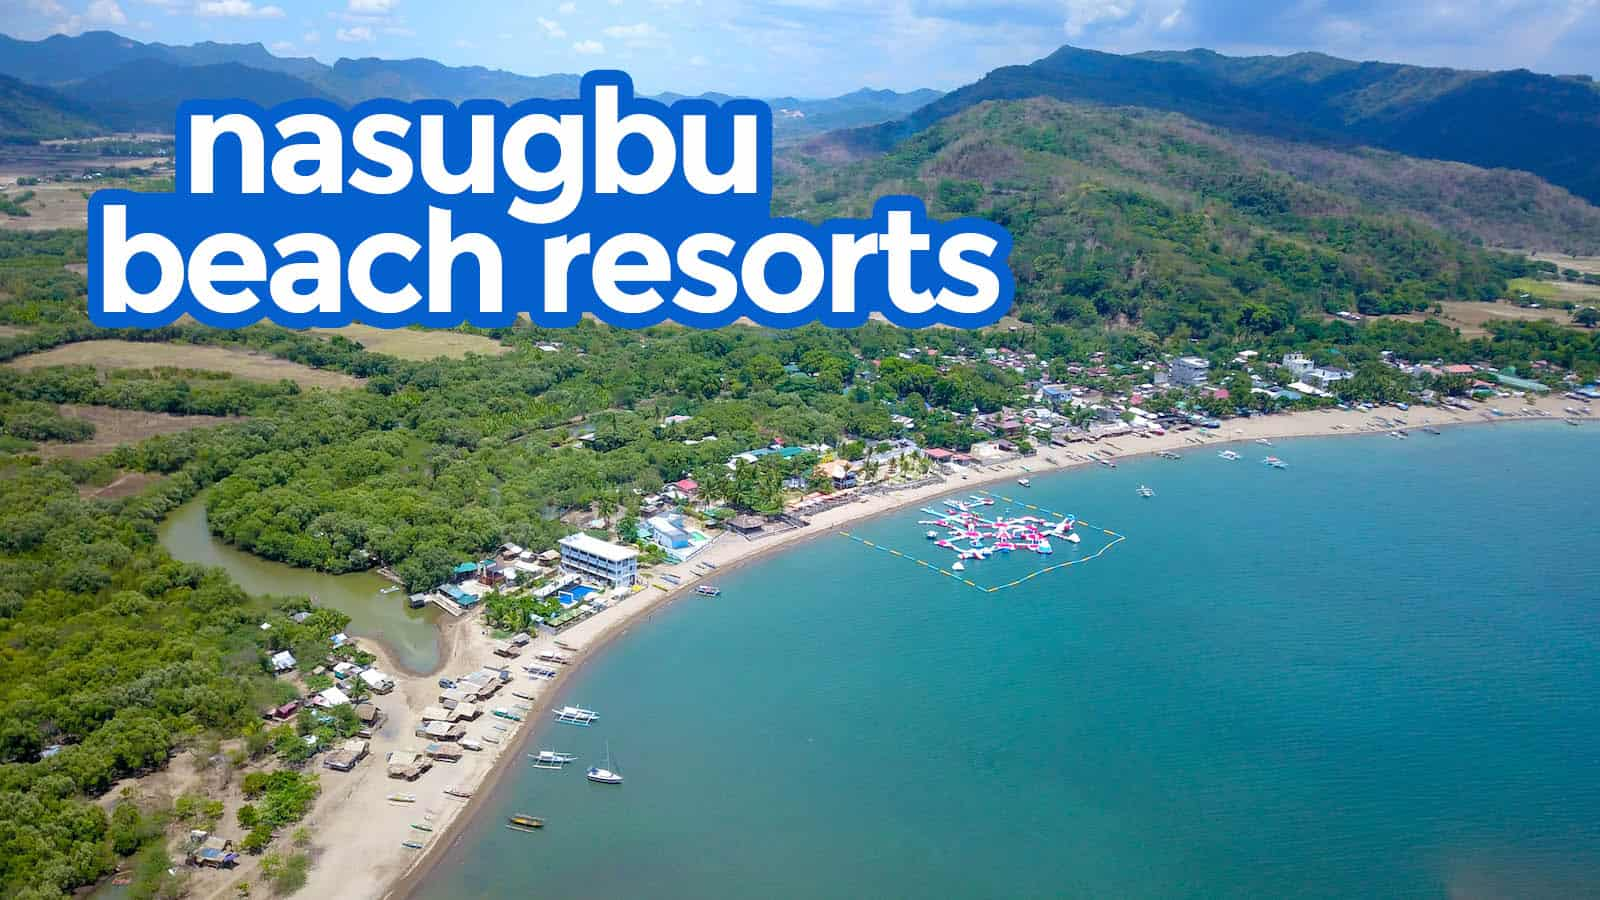 TOP 7 NASUGBU BATANGAS BEACH RESORTS & VACATION HOUSES